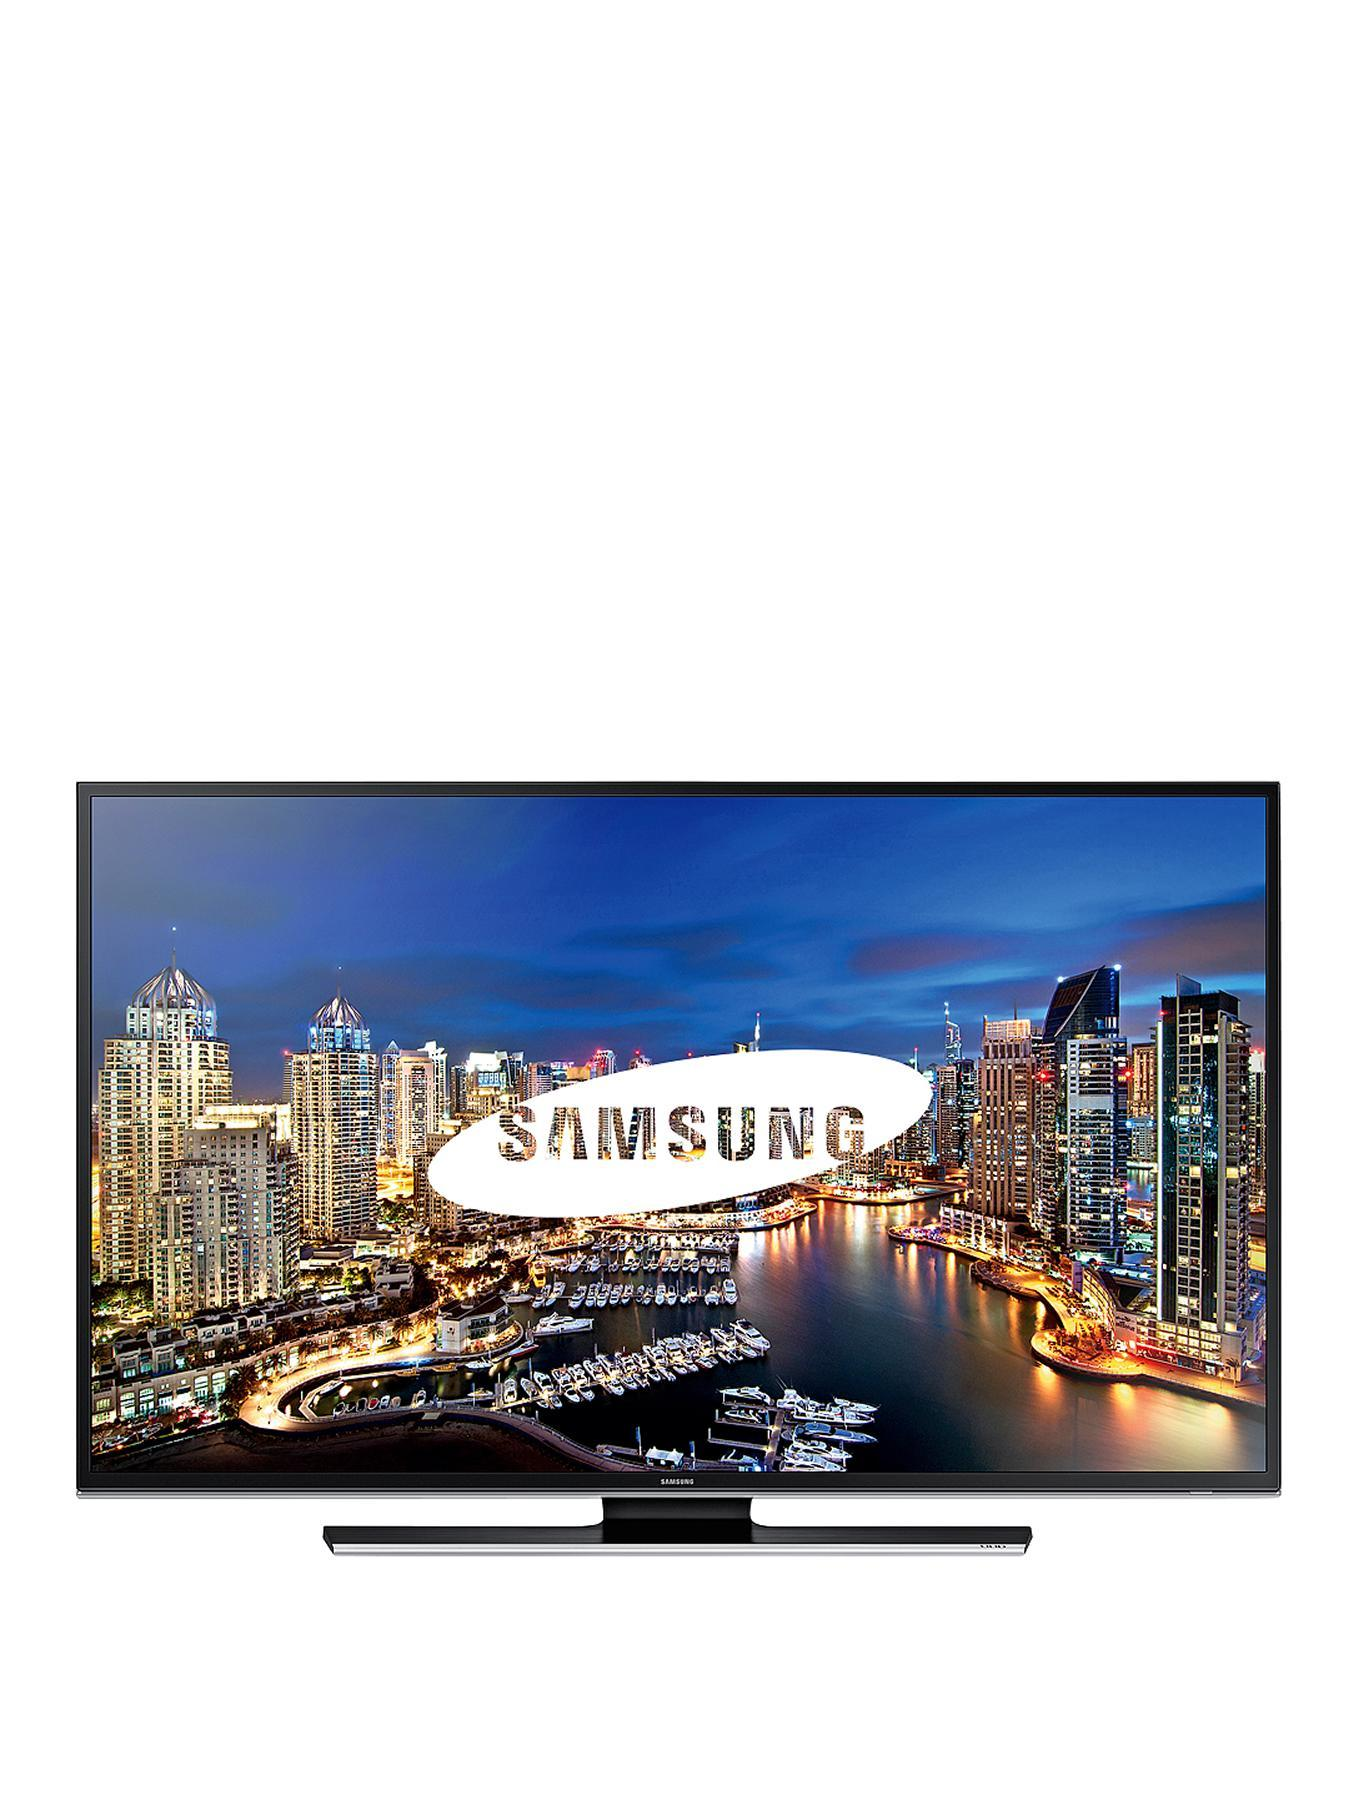 Samsung UE55HU6900 55 inch Smart 4K Ultra HD Freeview HD LED TV